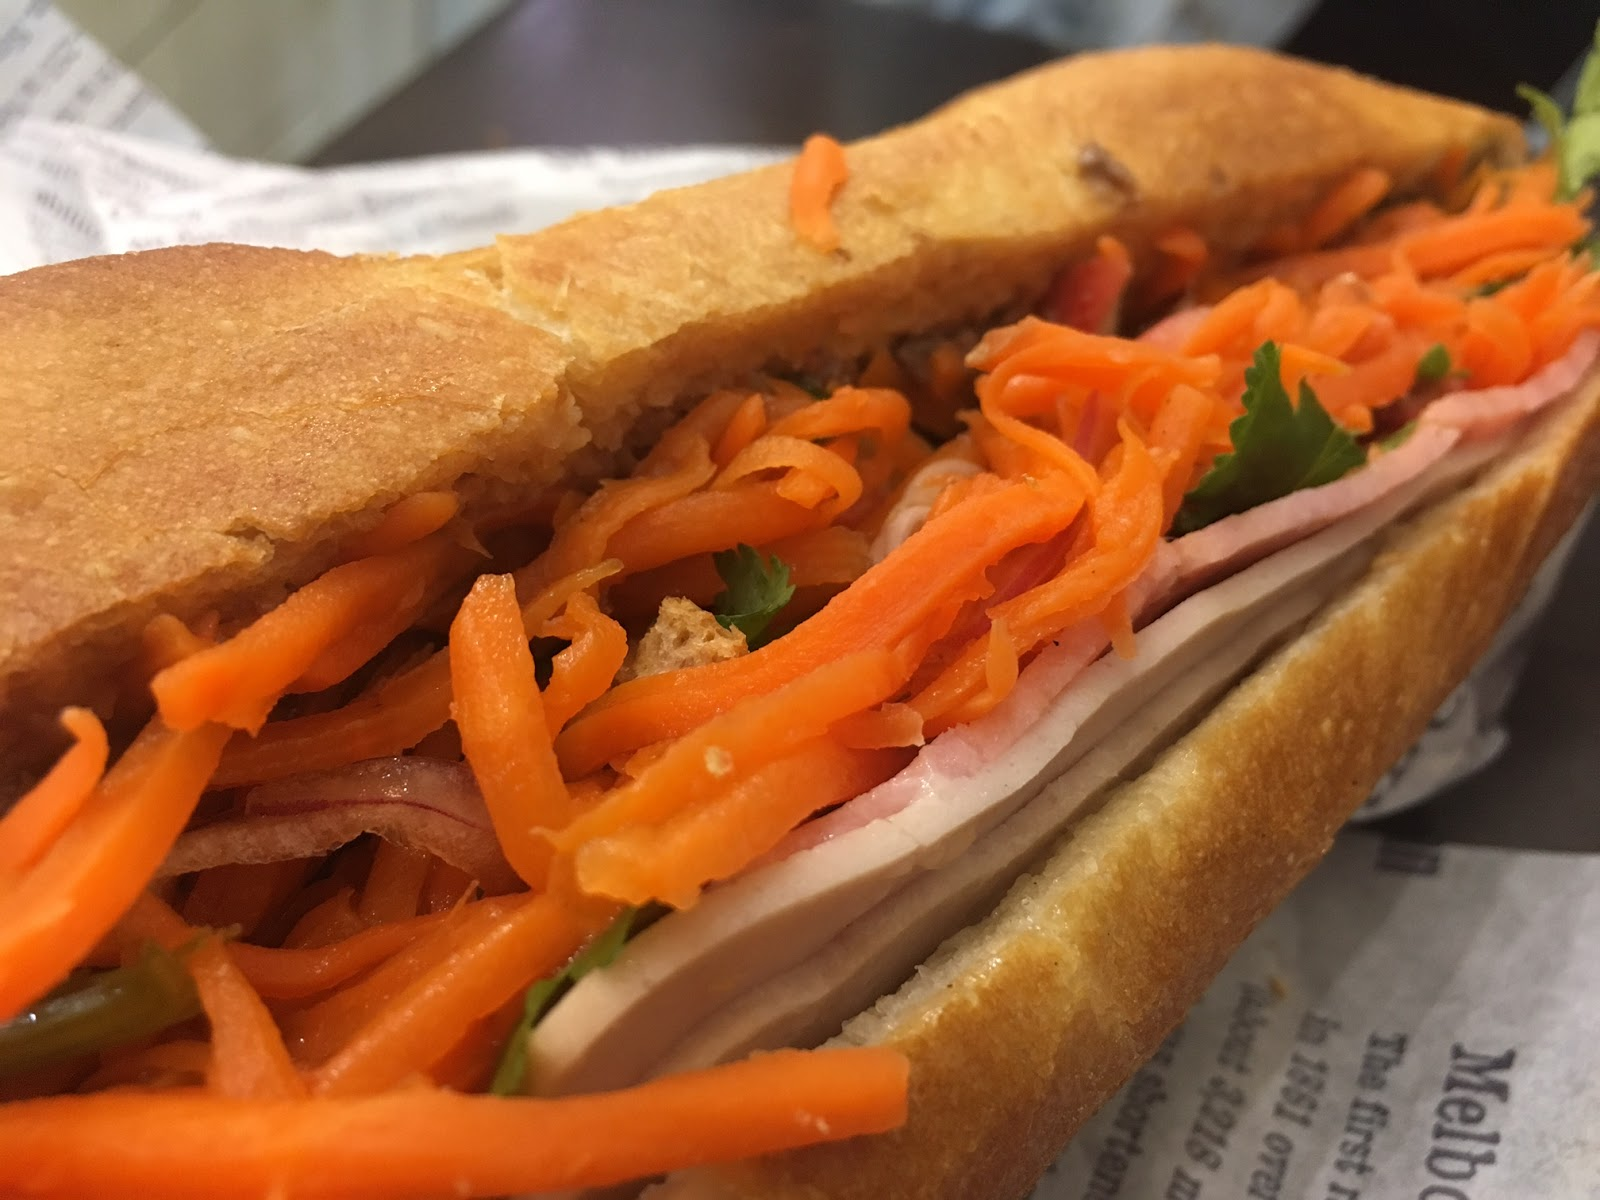 So While There S A Few Options Of Chicken Beef Roast Pork Grilled Pork Or Mushroom Today Steph And I Decide To Share The Classic Banh Mi 8 50